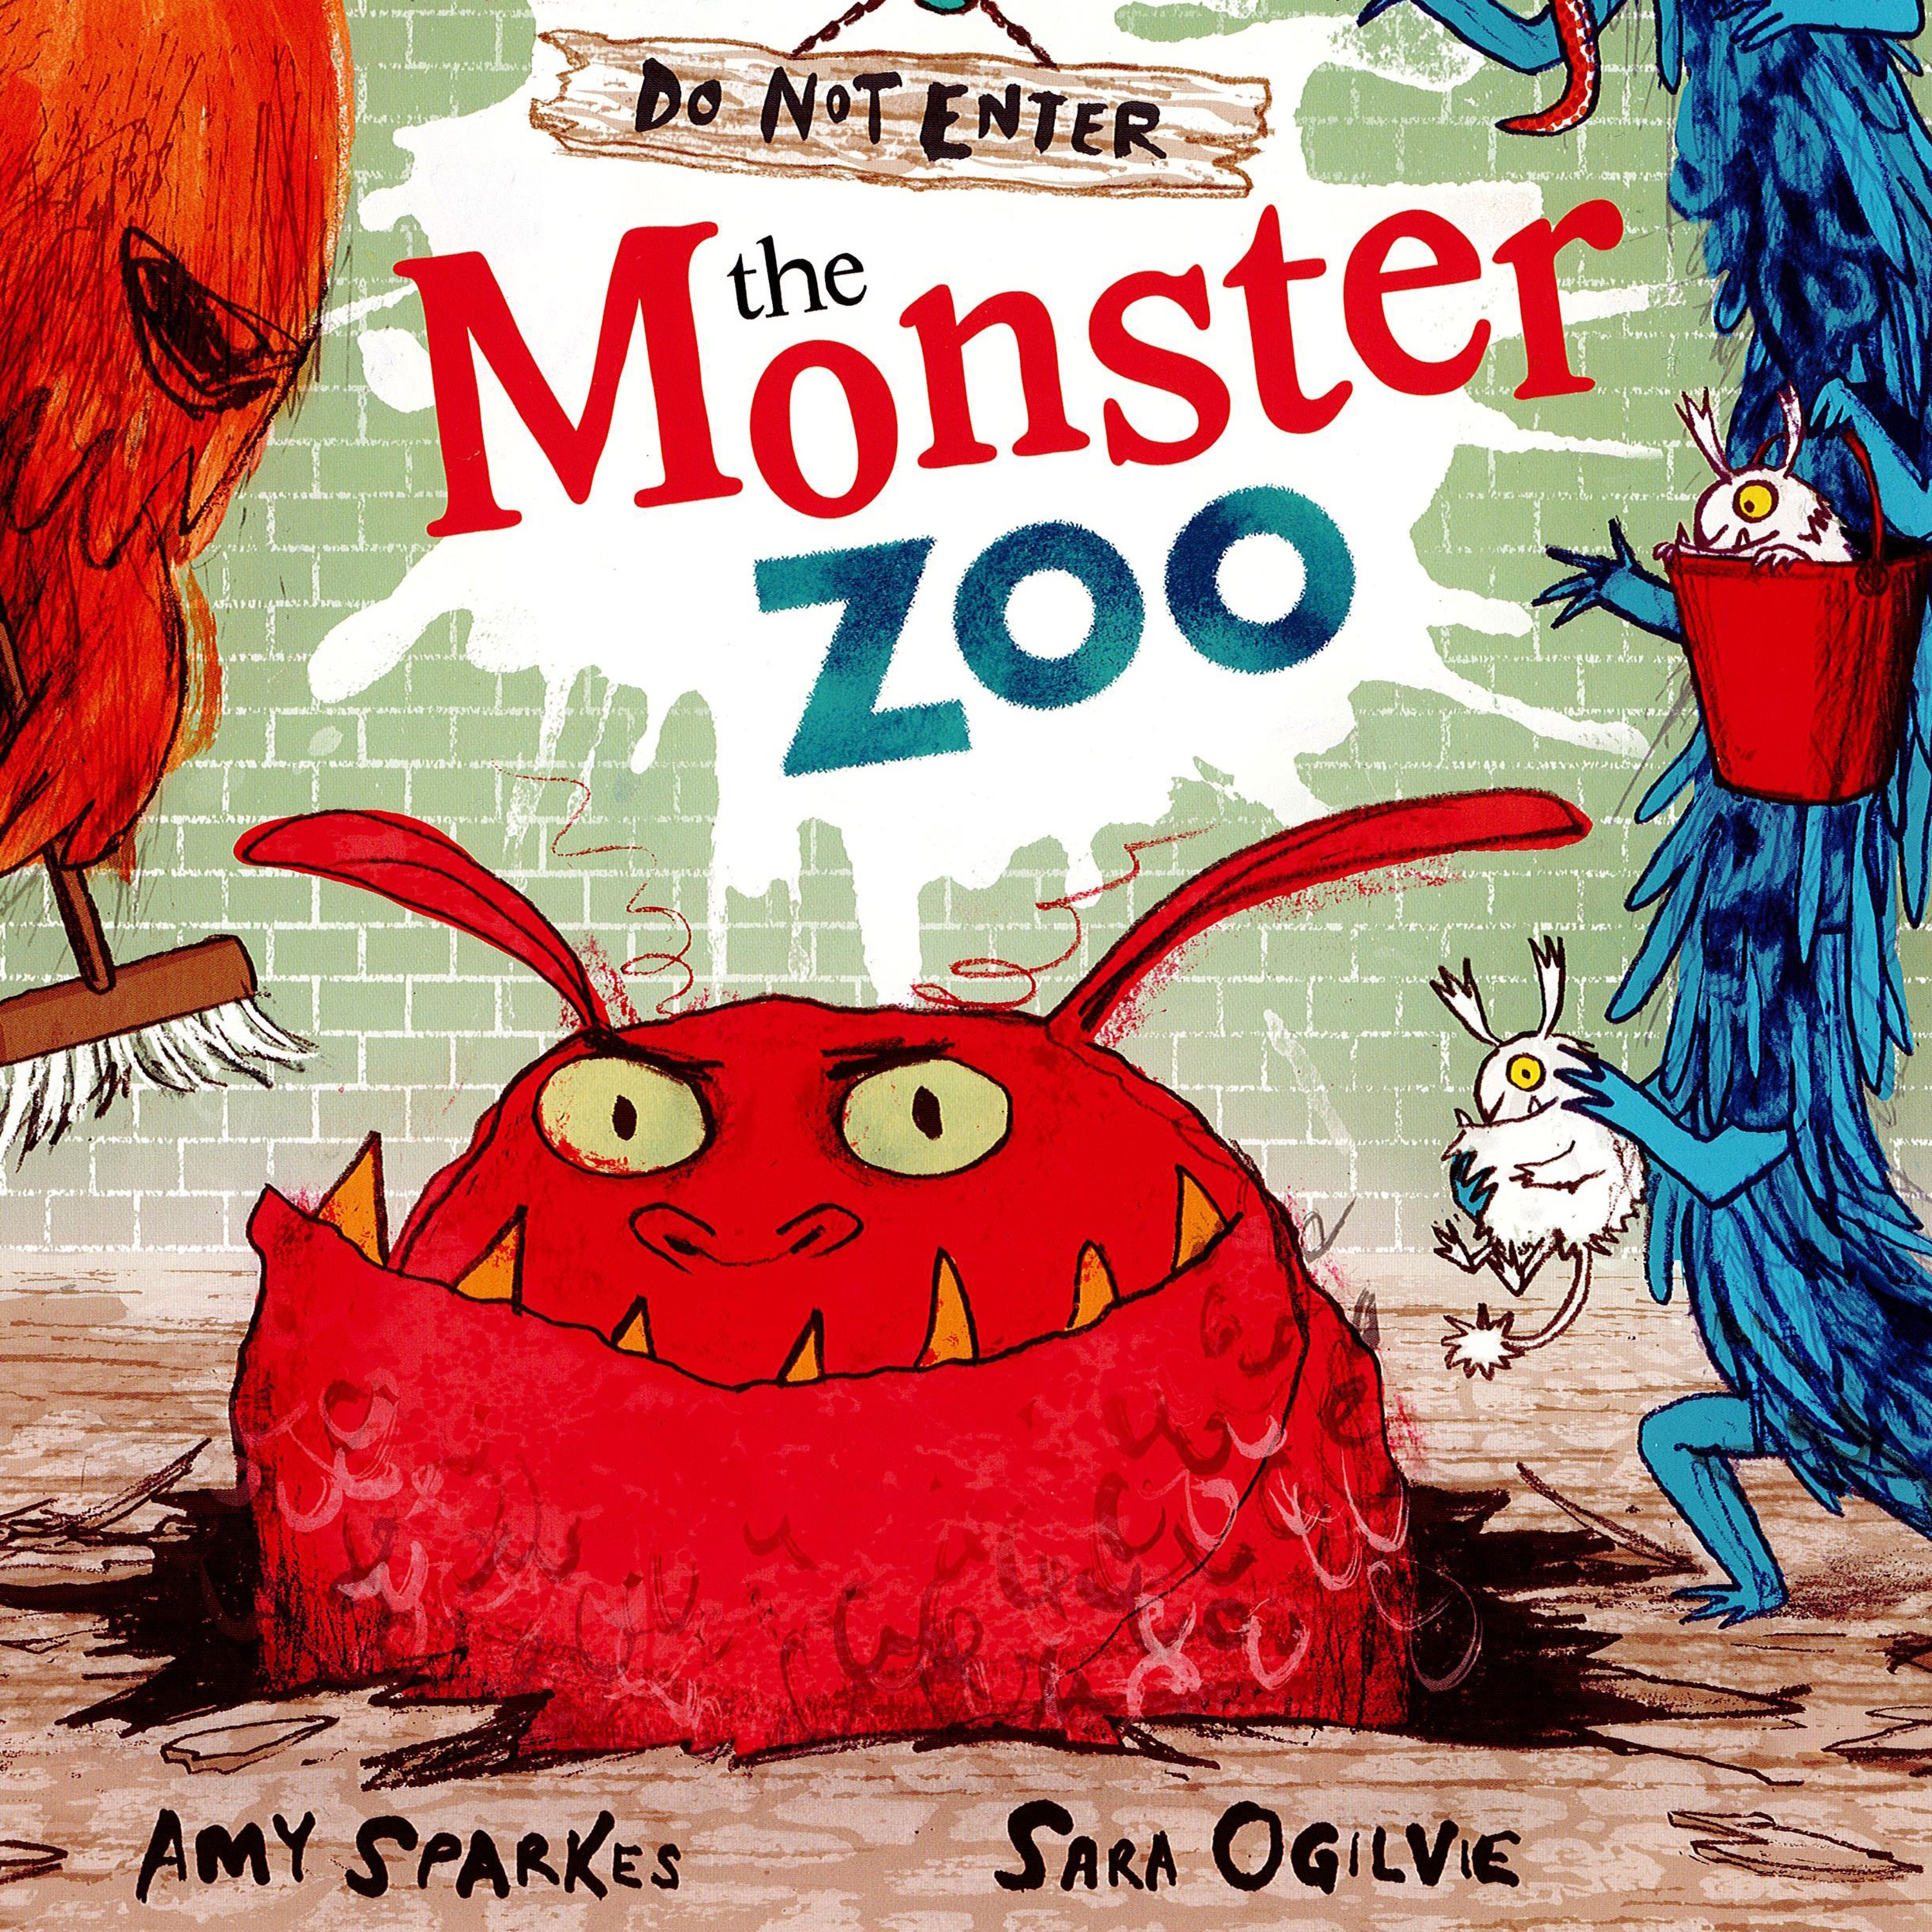 Do Not Enter The Monster Zoo by Amy Sparkes & Sara Ogilvie